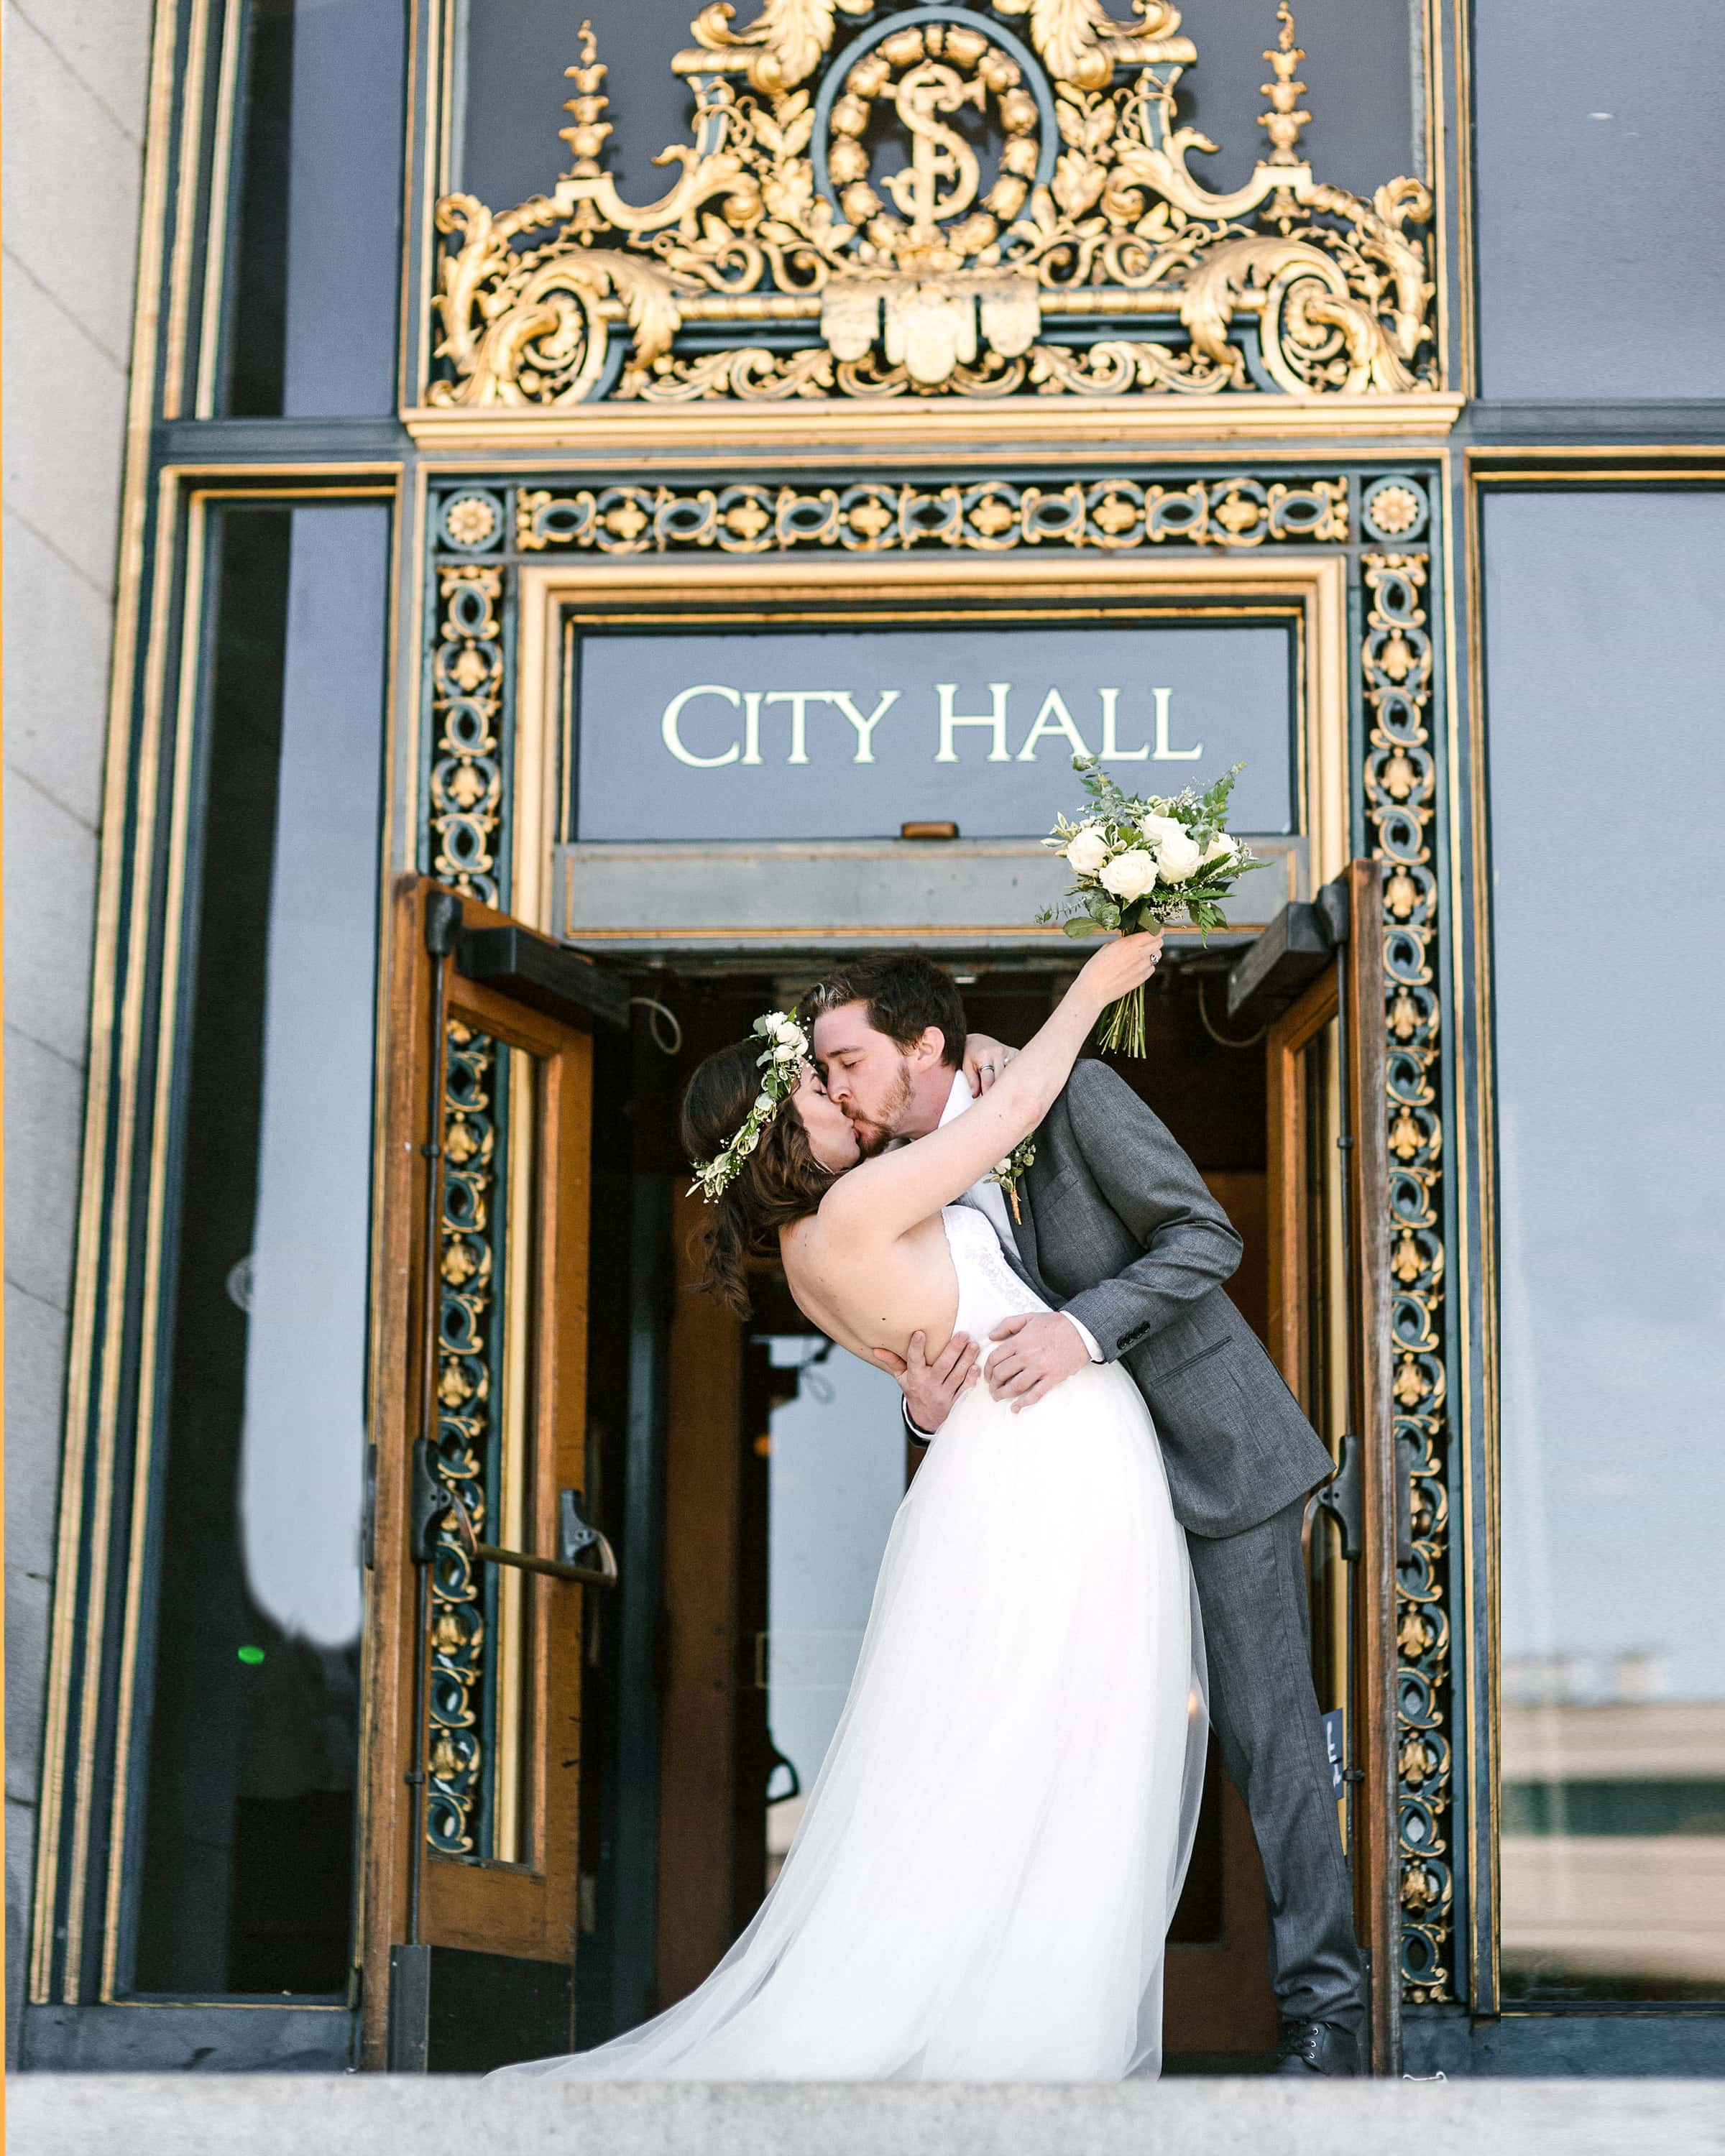 A zero waste wedding at San Francisco City Hall from www.goingzerowaste.com #zerowastewedding #cityhallwedding #sfcityhall #elopements #zerowaste #ecofriendly #wedding